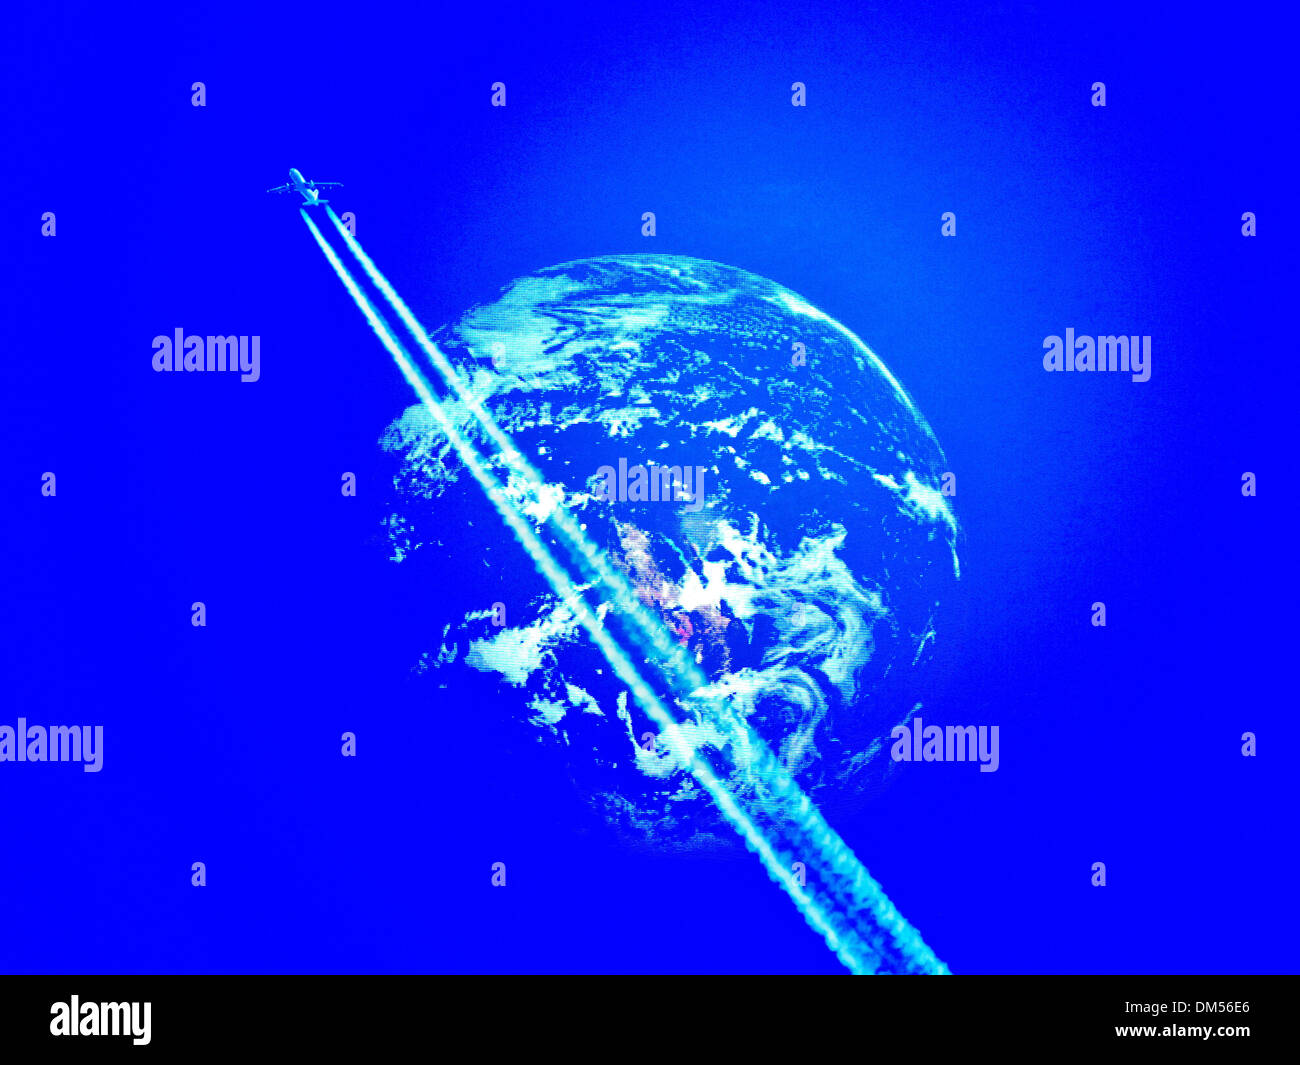 Earth, space, universe, blue, jet, jet airplane, condensation trail, airplane, planet, environment, CO2, - Stock Image